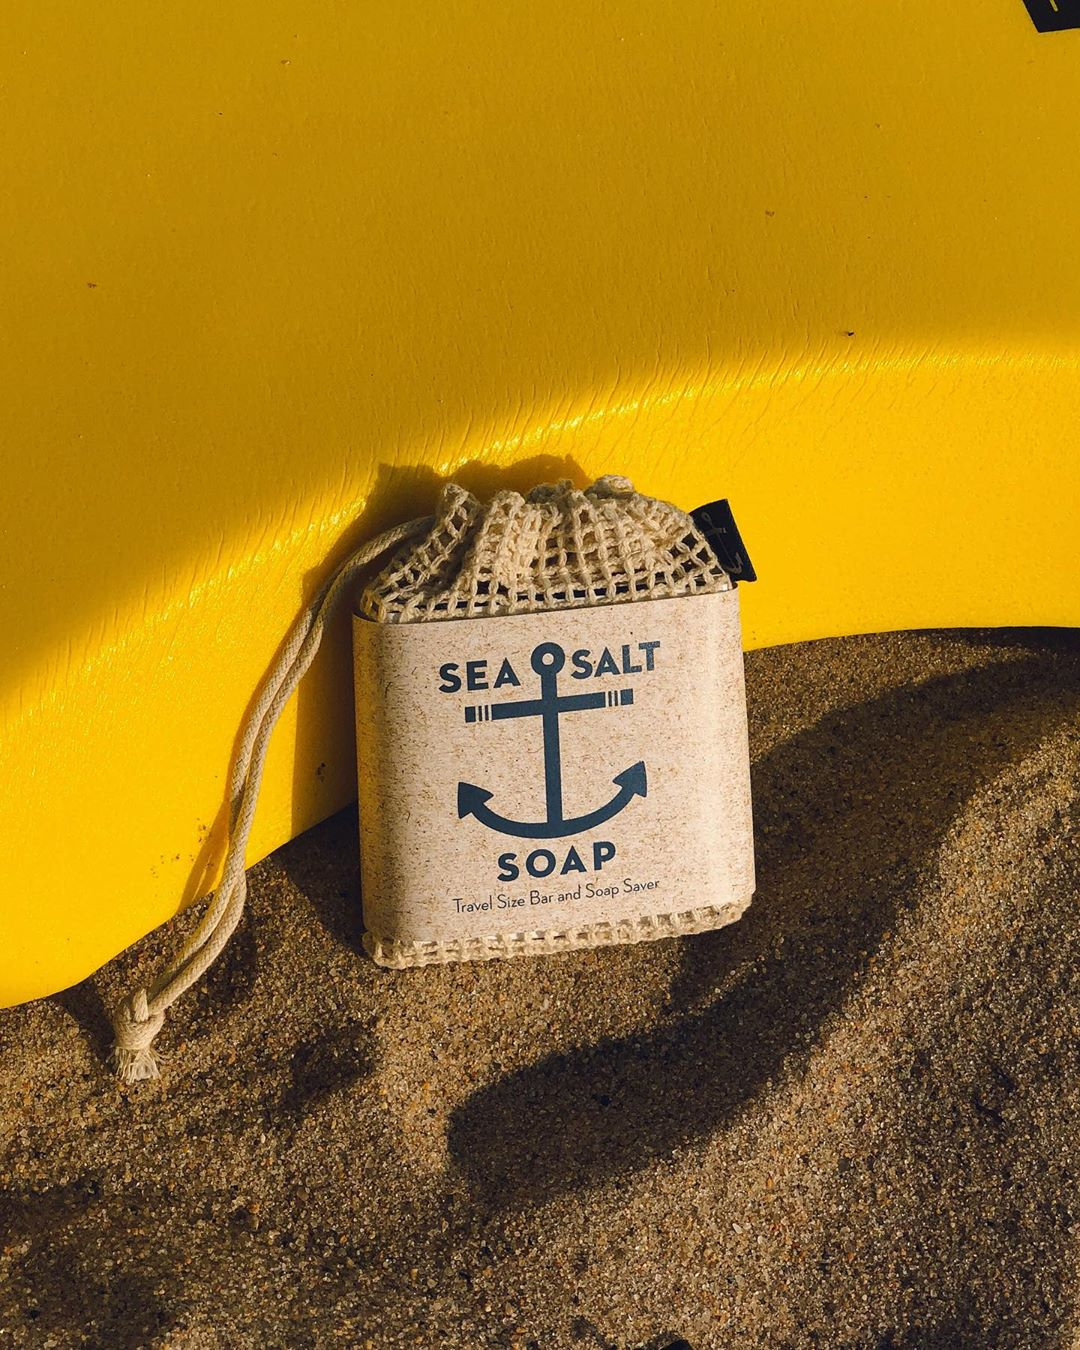 Swedish Dream Sea Salt Travel Gift Soap